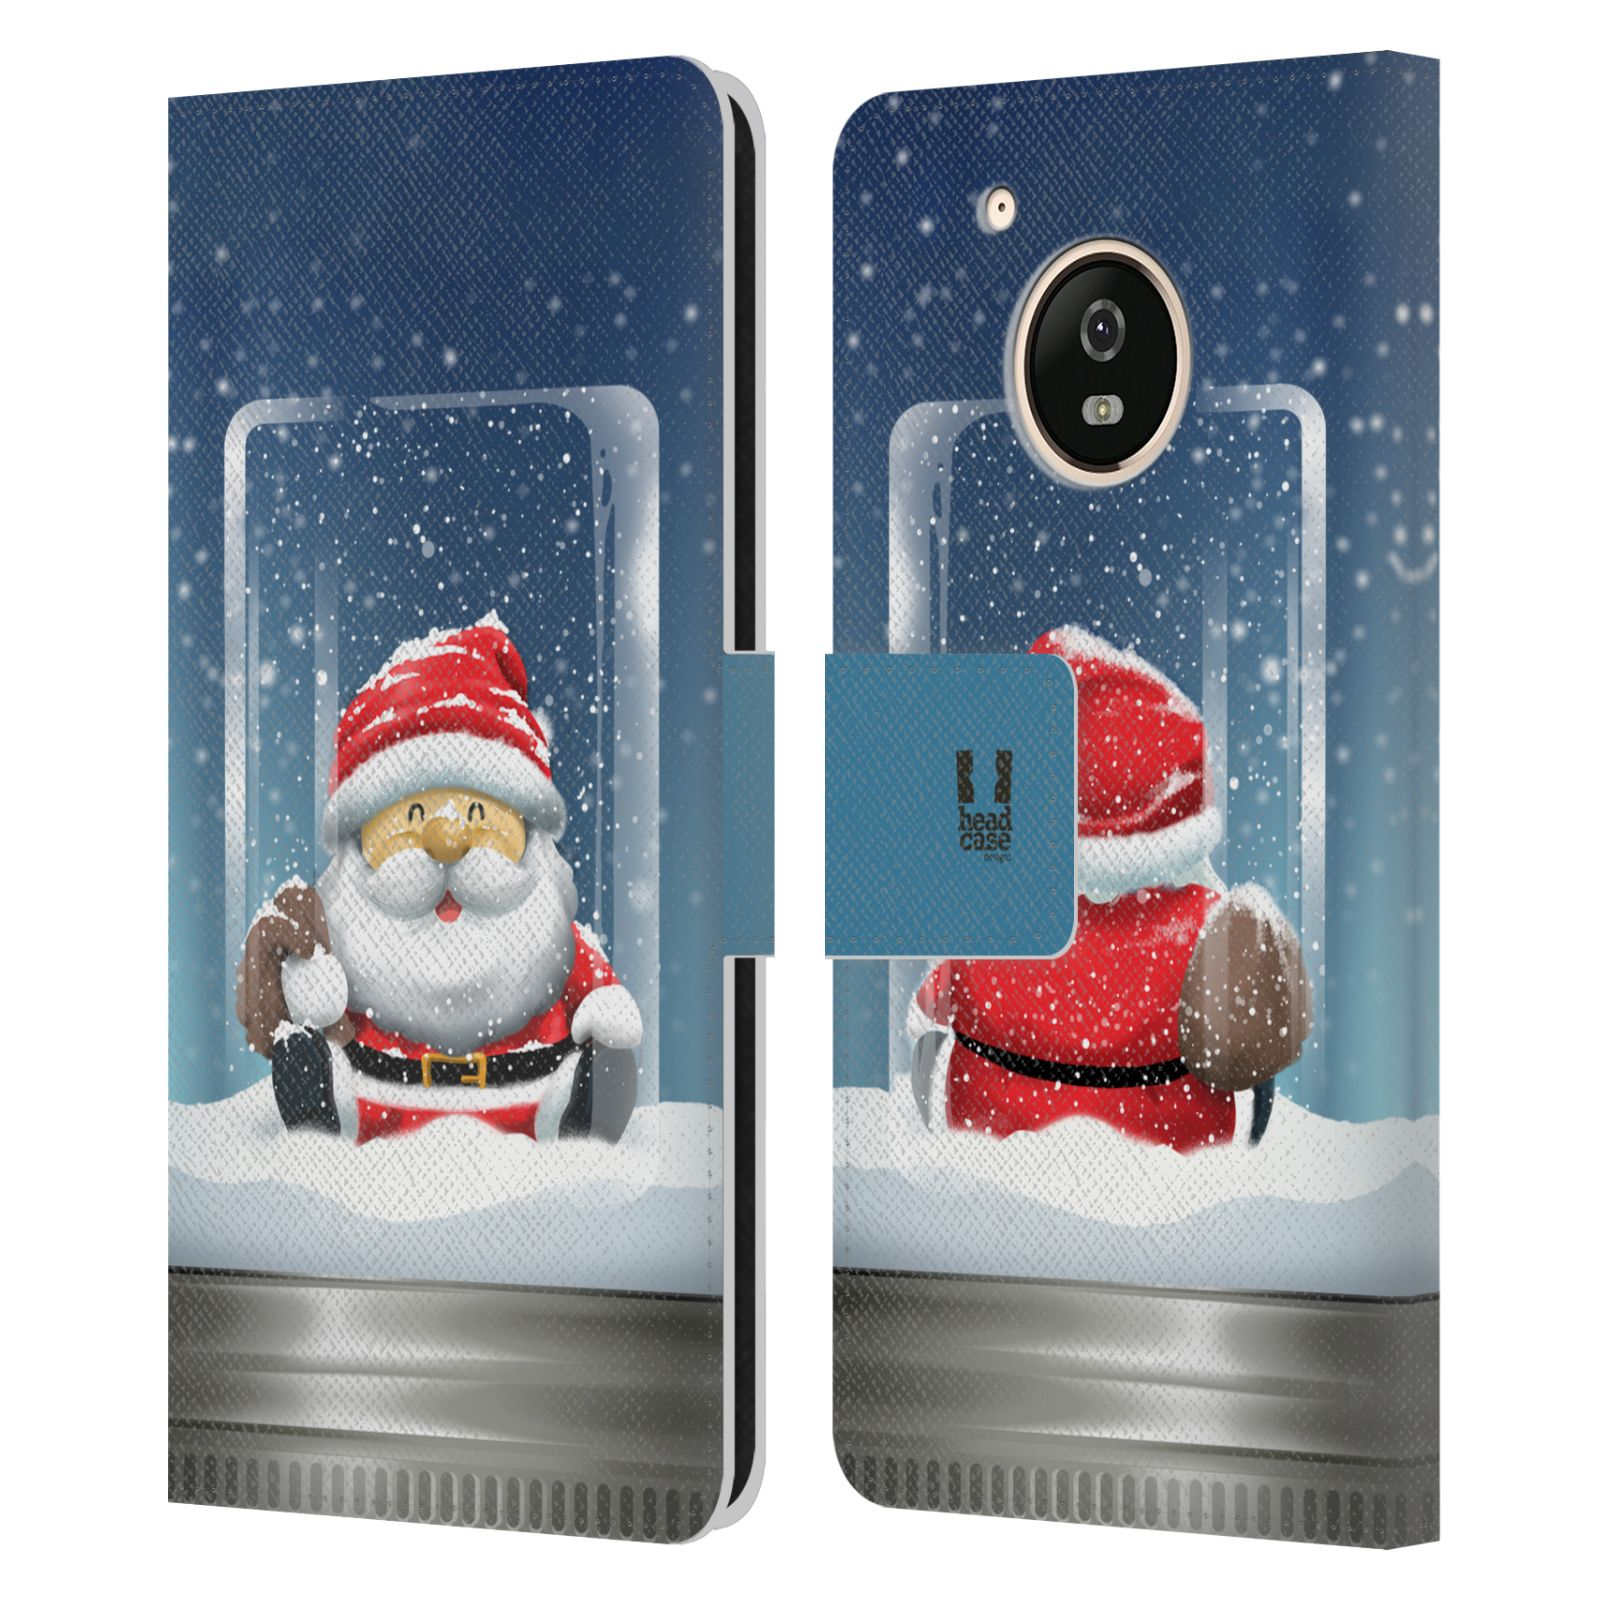 HEAD-CASE-DESIGNS-CHRISTMAS-IN-JARS-LEATHER-BOOK-CASE-FOR-MOTOROLA-MOTO-G5